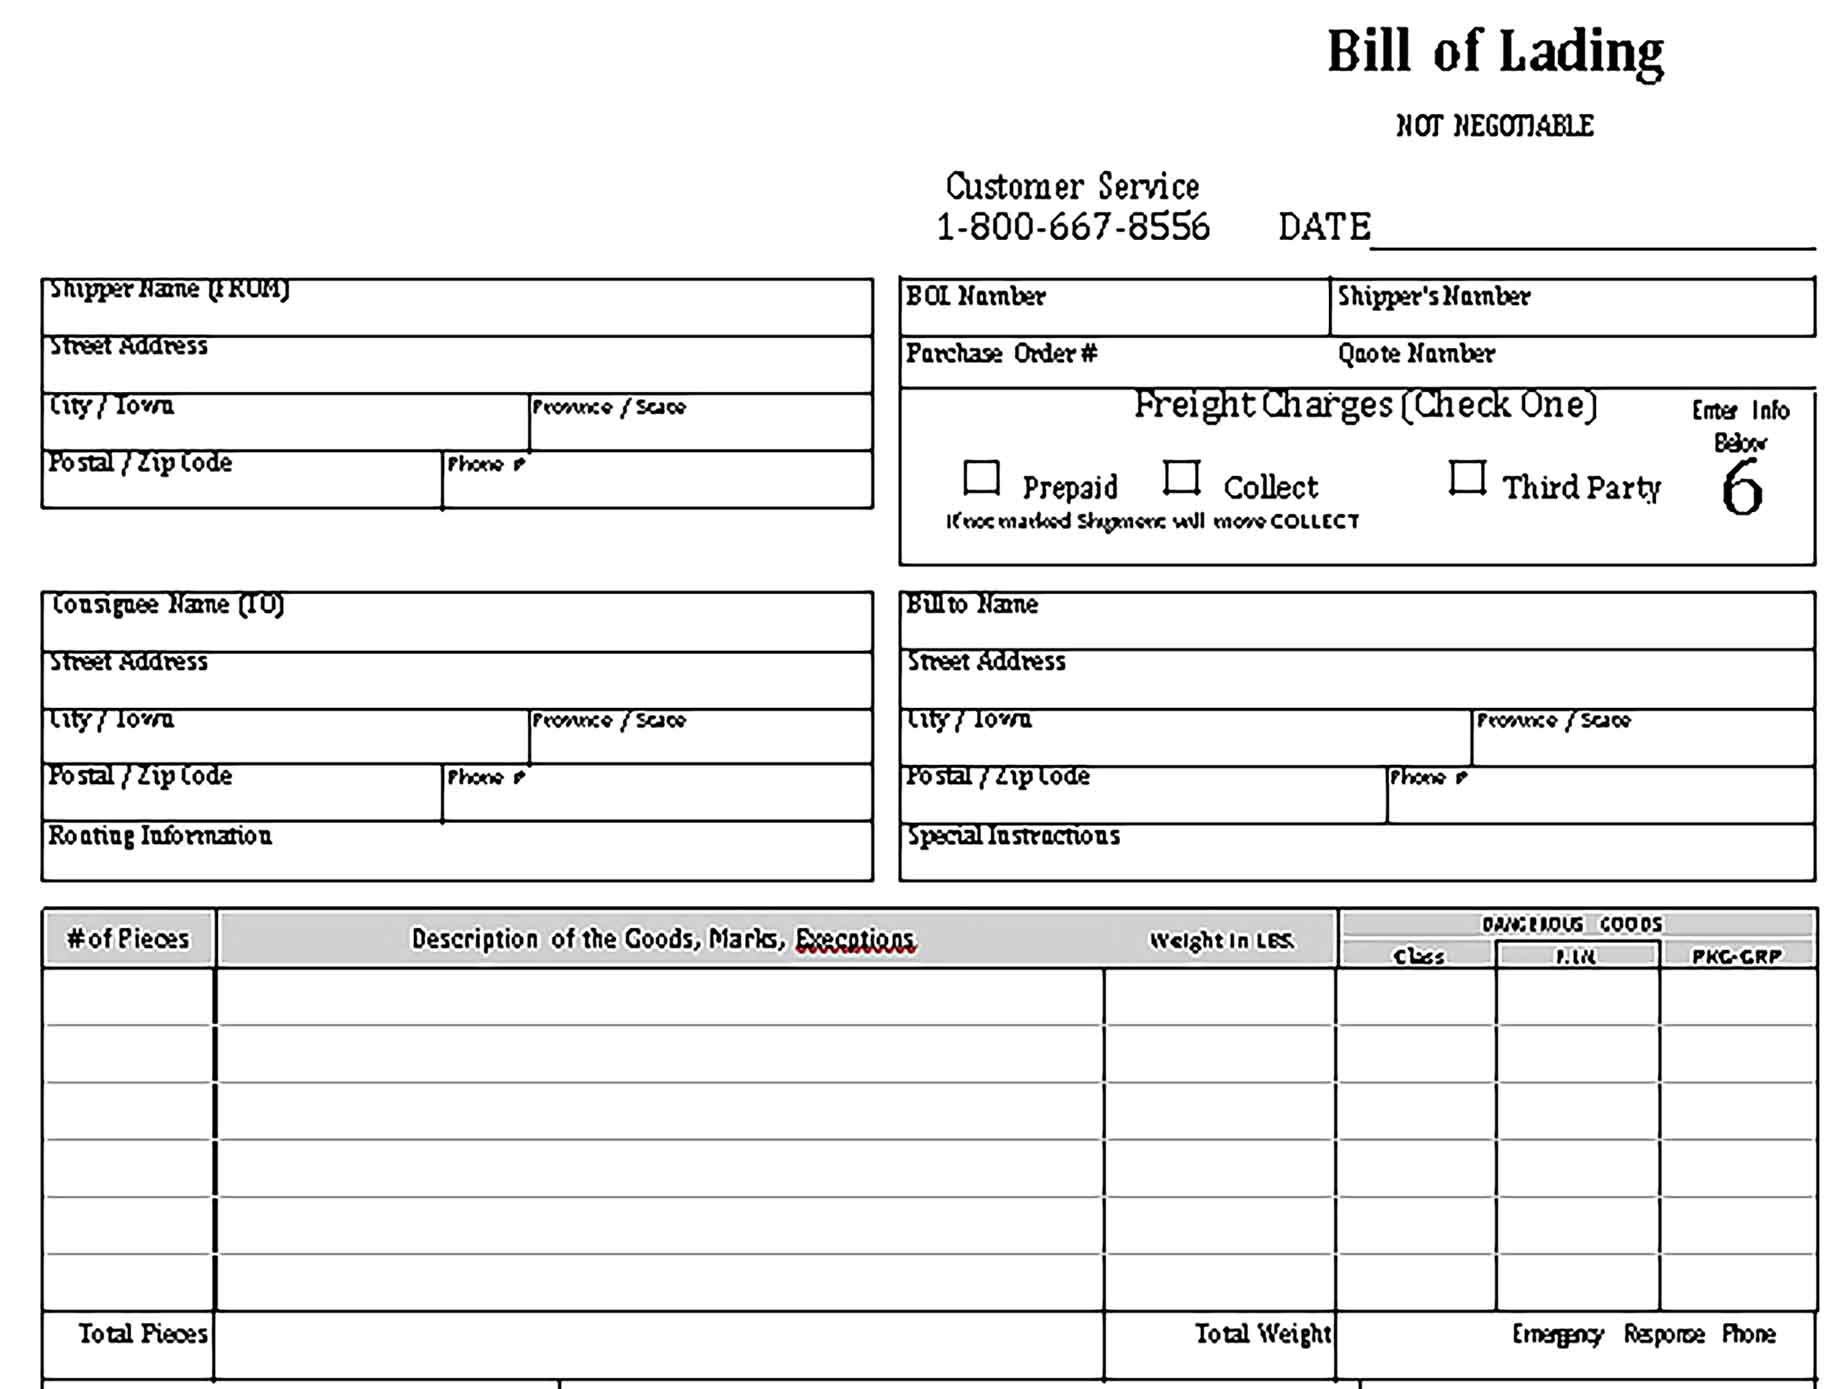 Sample bill of lading 001 Templates